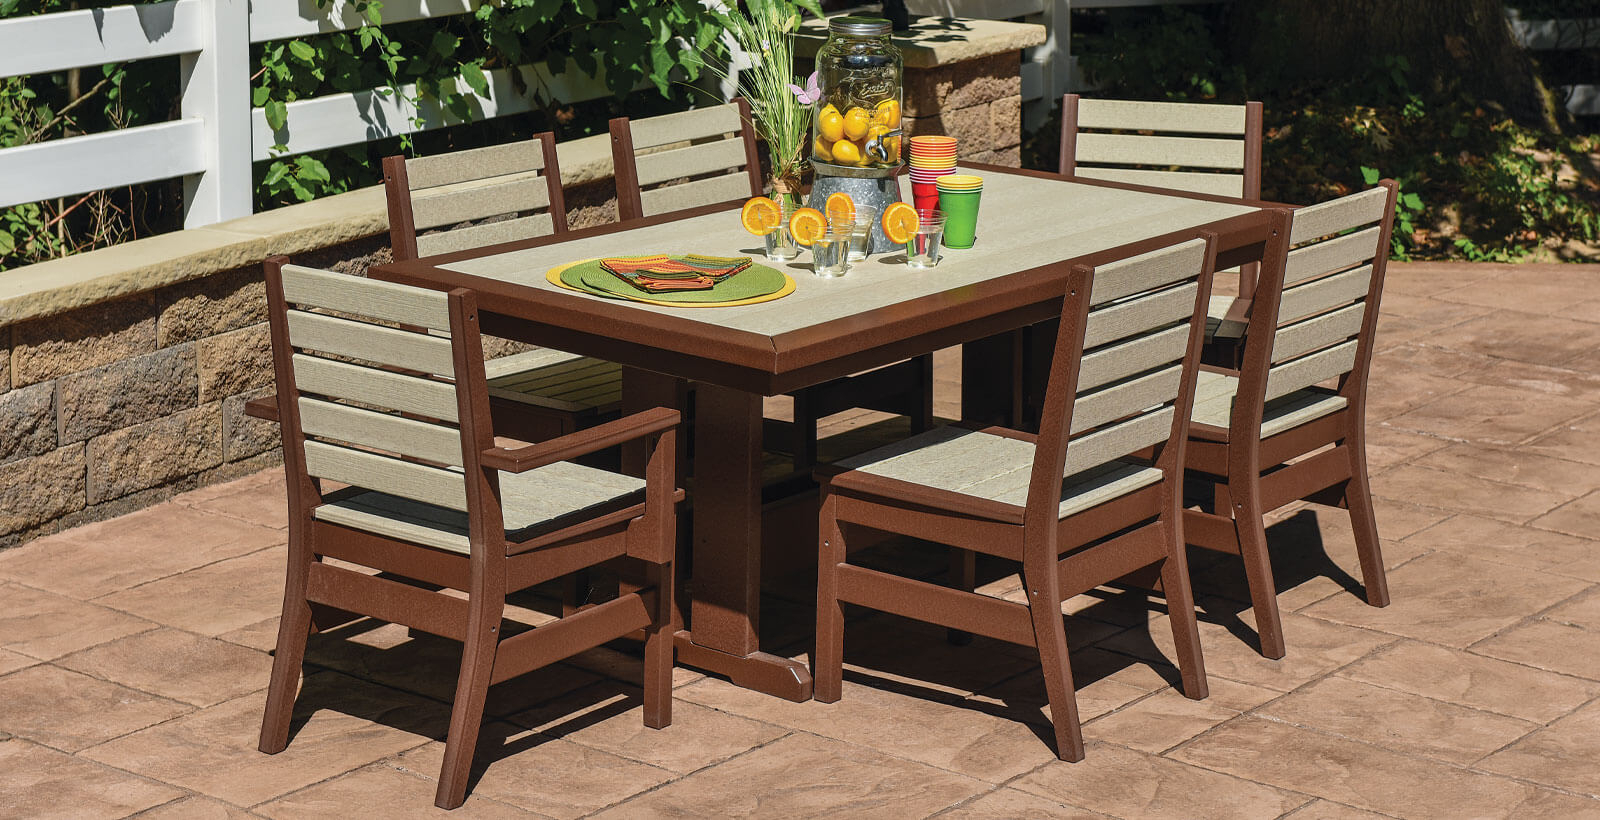 Outdoor Poly Furniture | E.c (View 15 of 20)